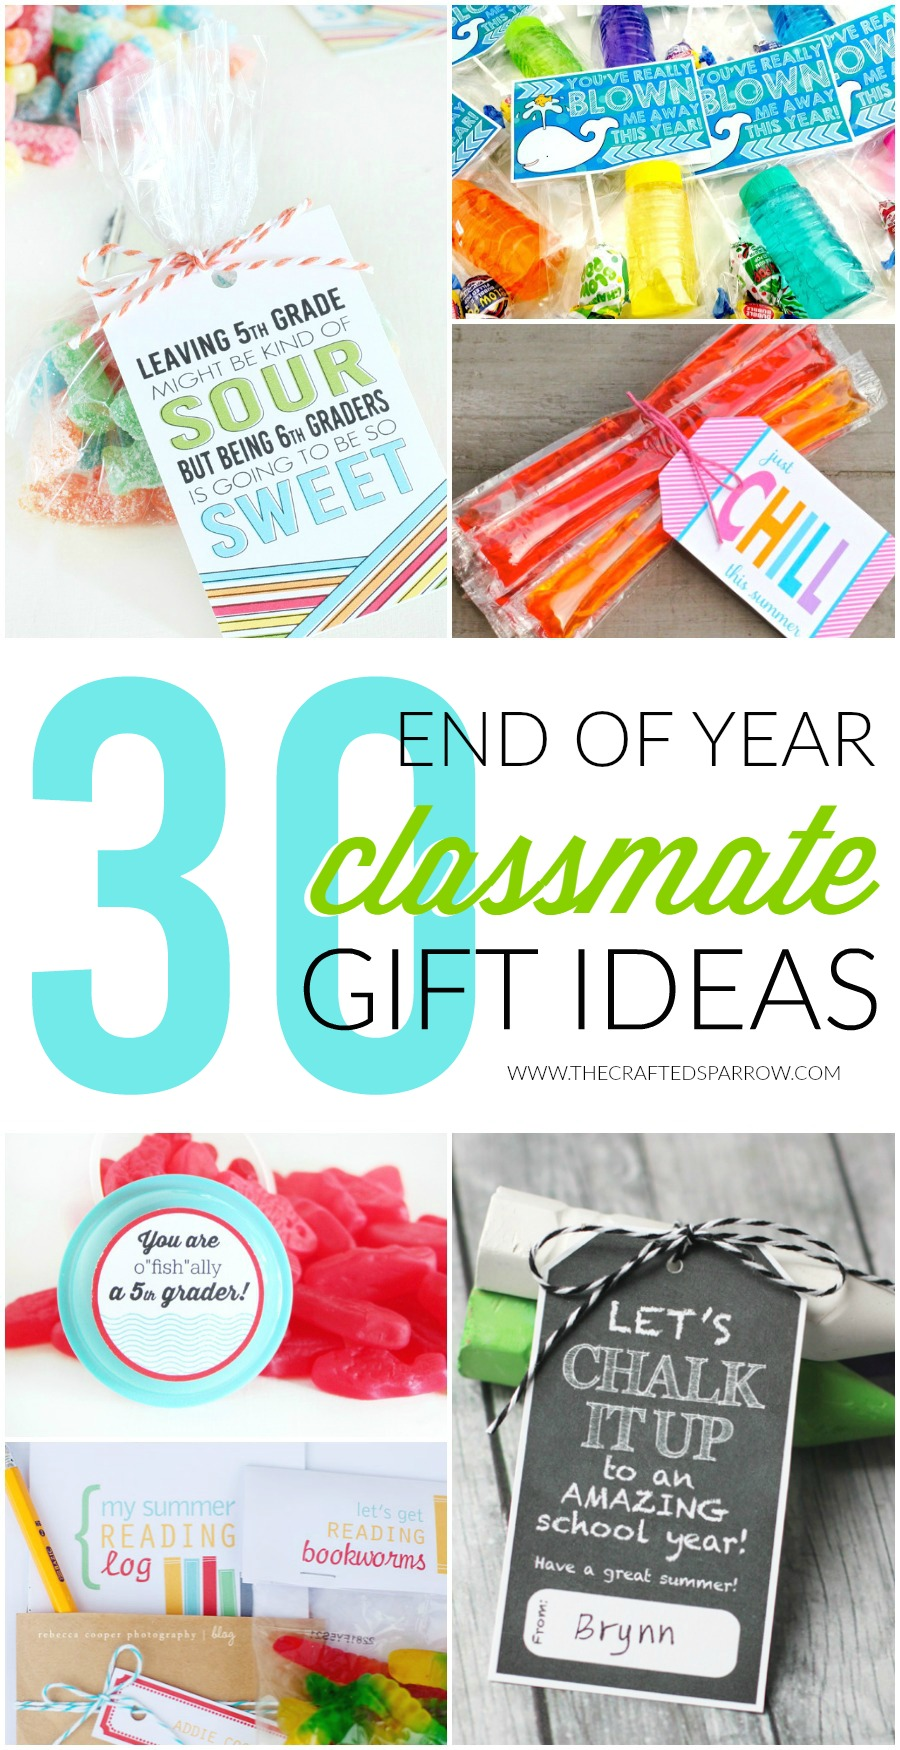 6th day of christmas gift ideas